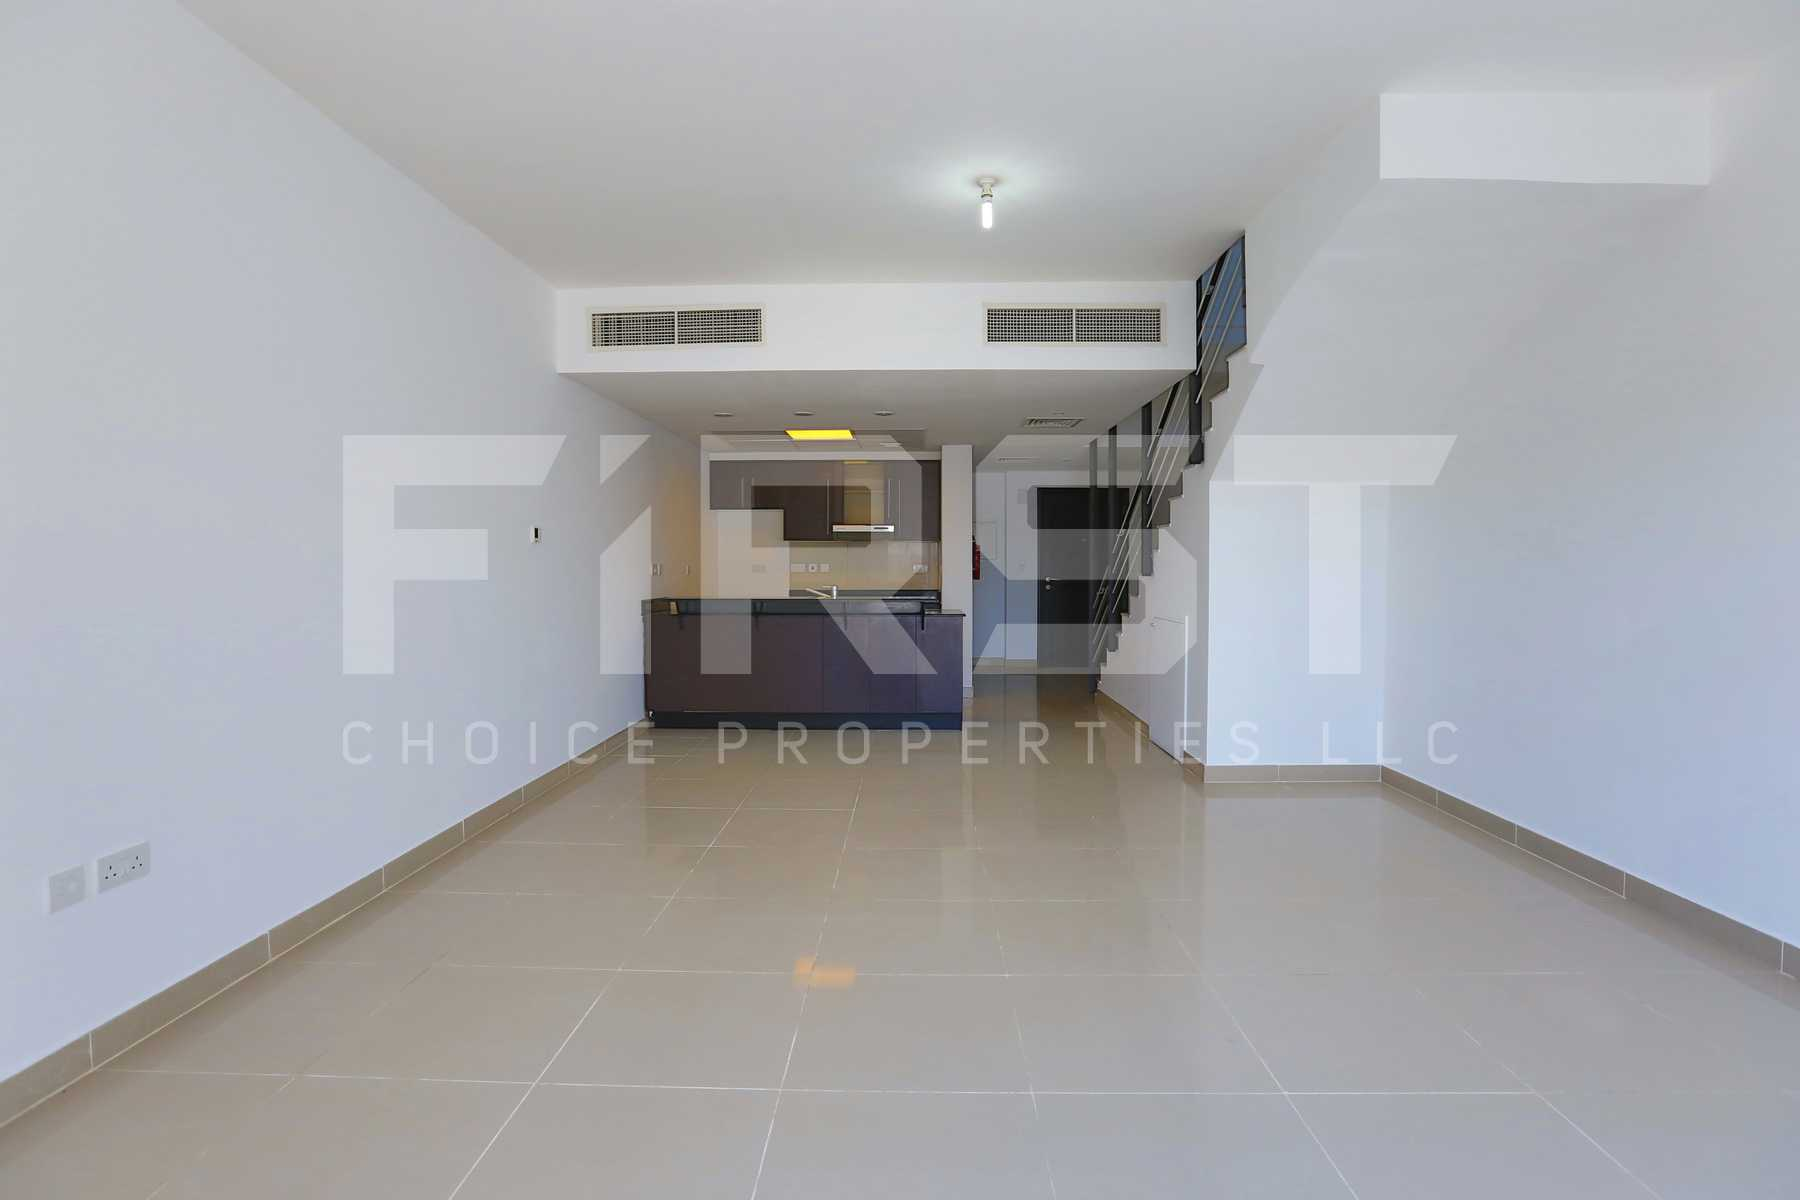 Internal Photo of 3 Bedroom Villa in Al Reef Villas Al Reef Abu Dhabi UAE 225.2 sq.m 2424 sq.ft (2).jpg